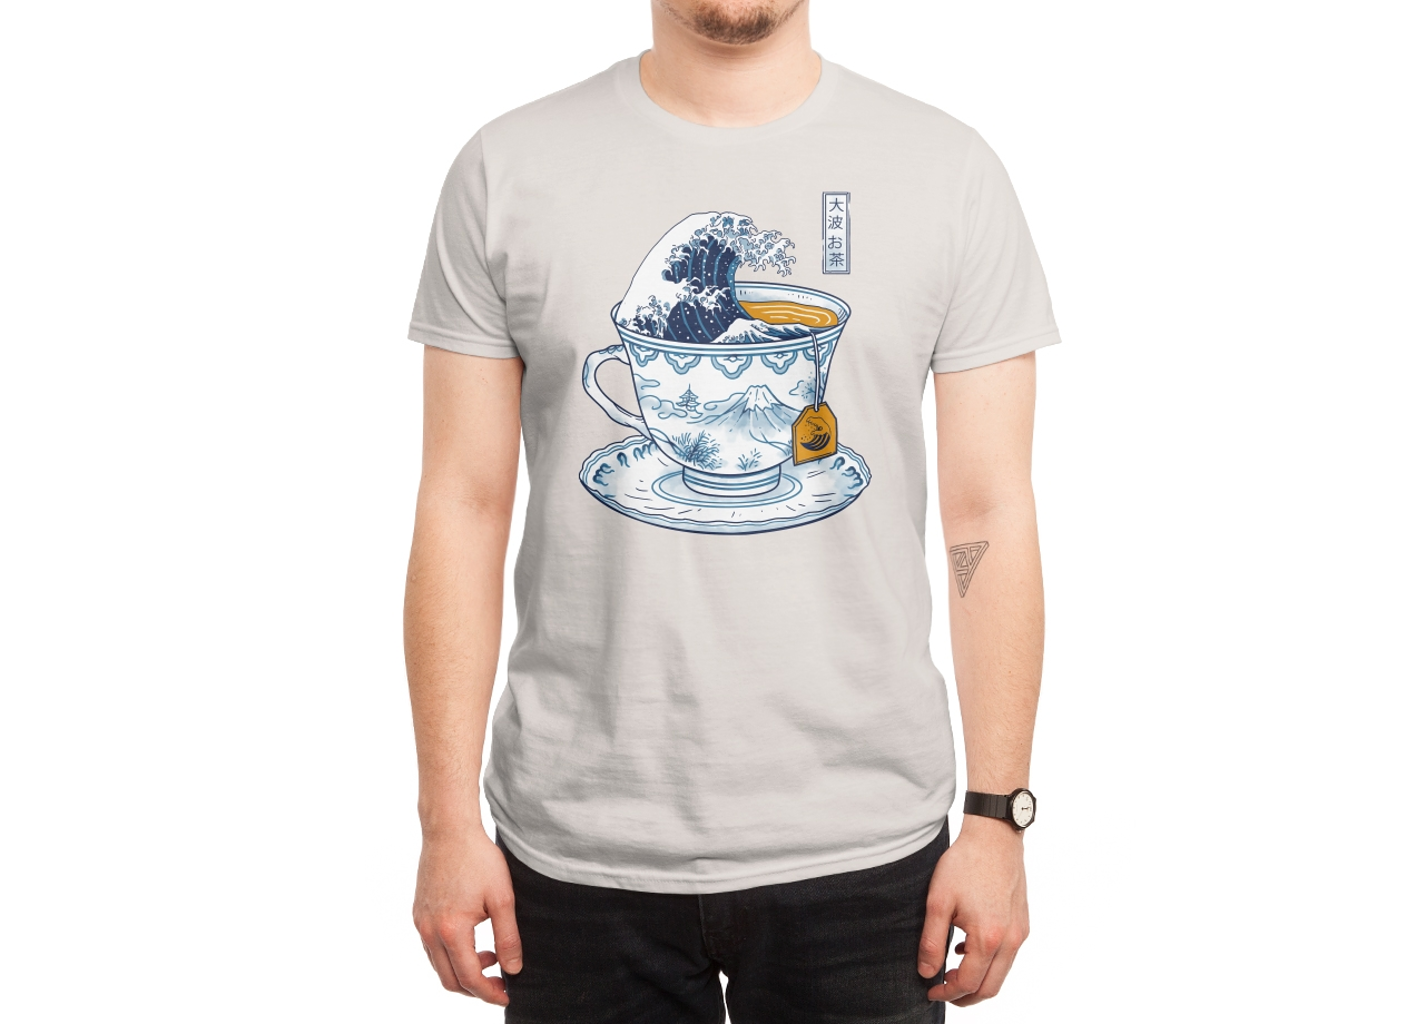 Threadless: The Great Kanagawa Tee